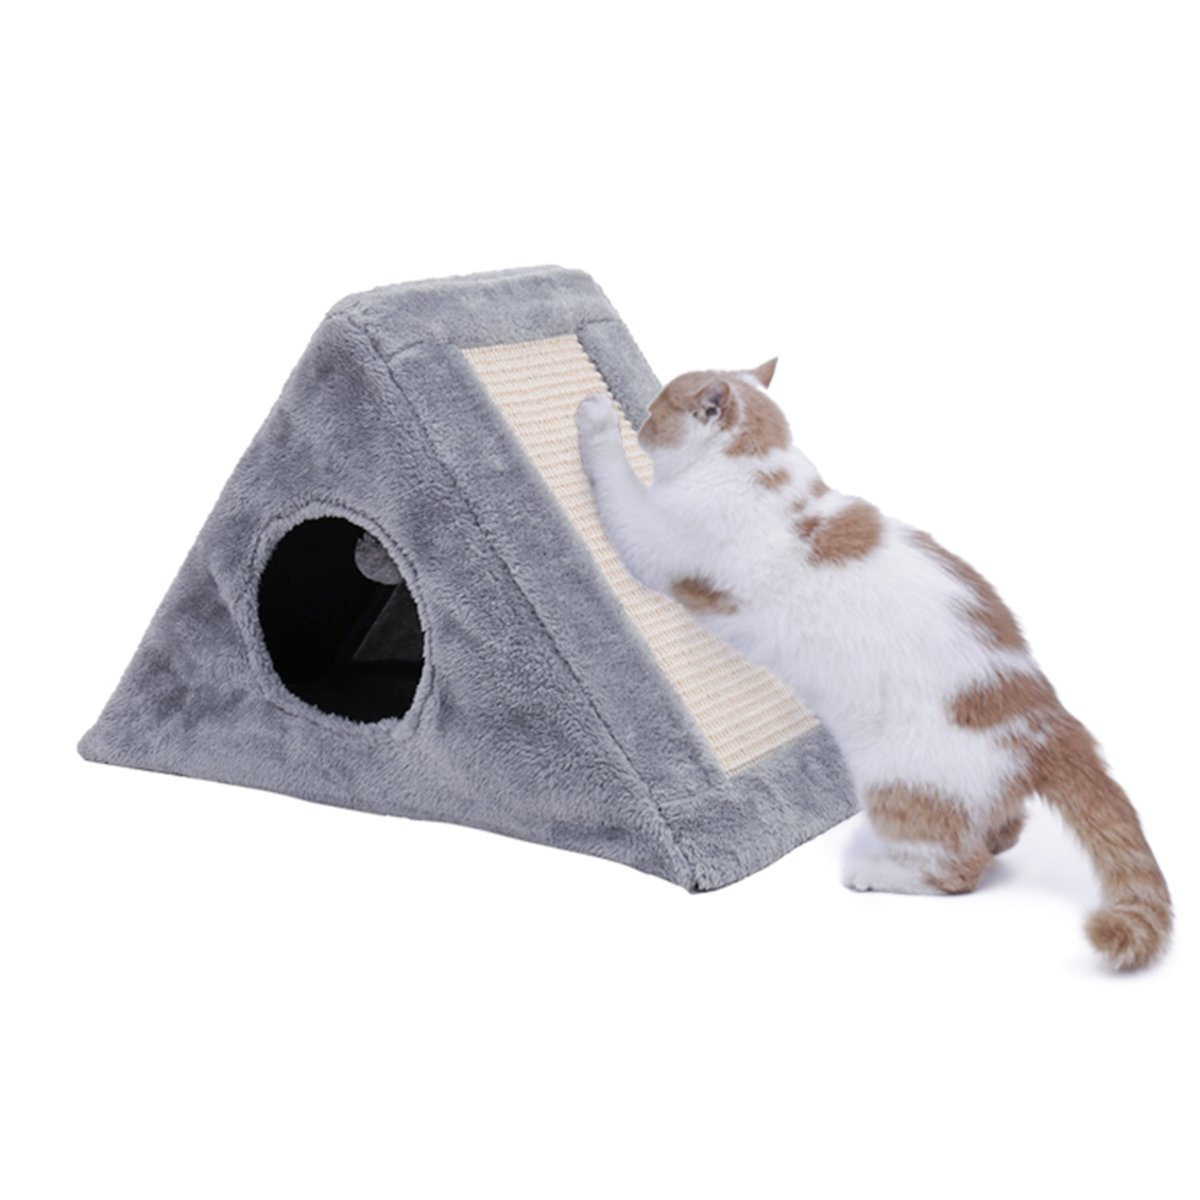 PAWZ Road Cat Scratching Bed Kitten Tower with Scratching Board-Gray